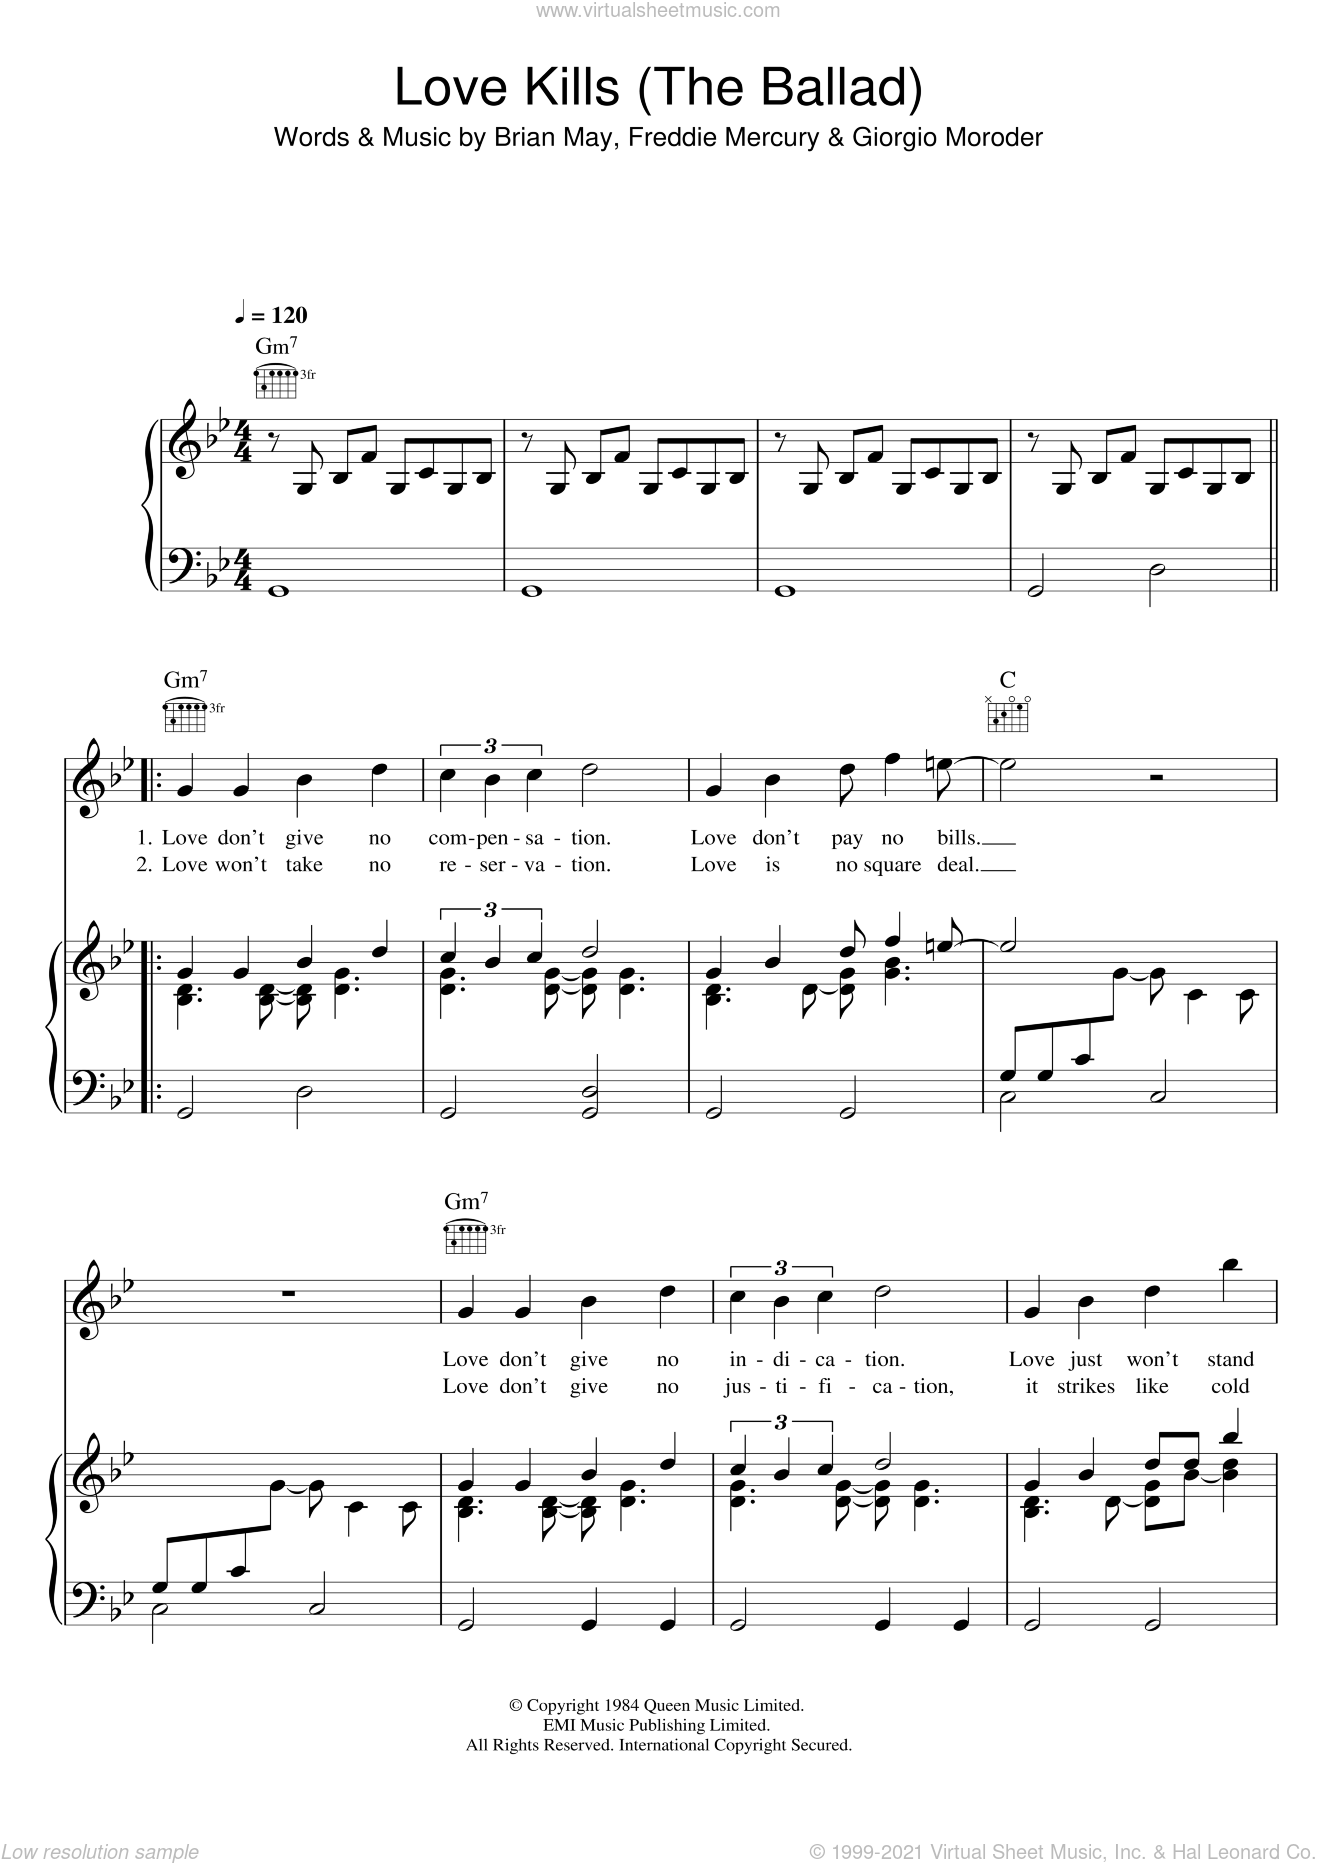 Love Kills (The Ballad) sheet music for voice, piano or guitar by Queen, Brian May, Freddie Mercury and Giorgio Moroder, intermediate skill level